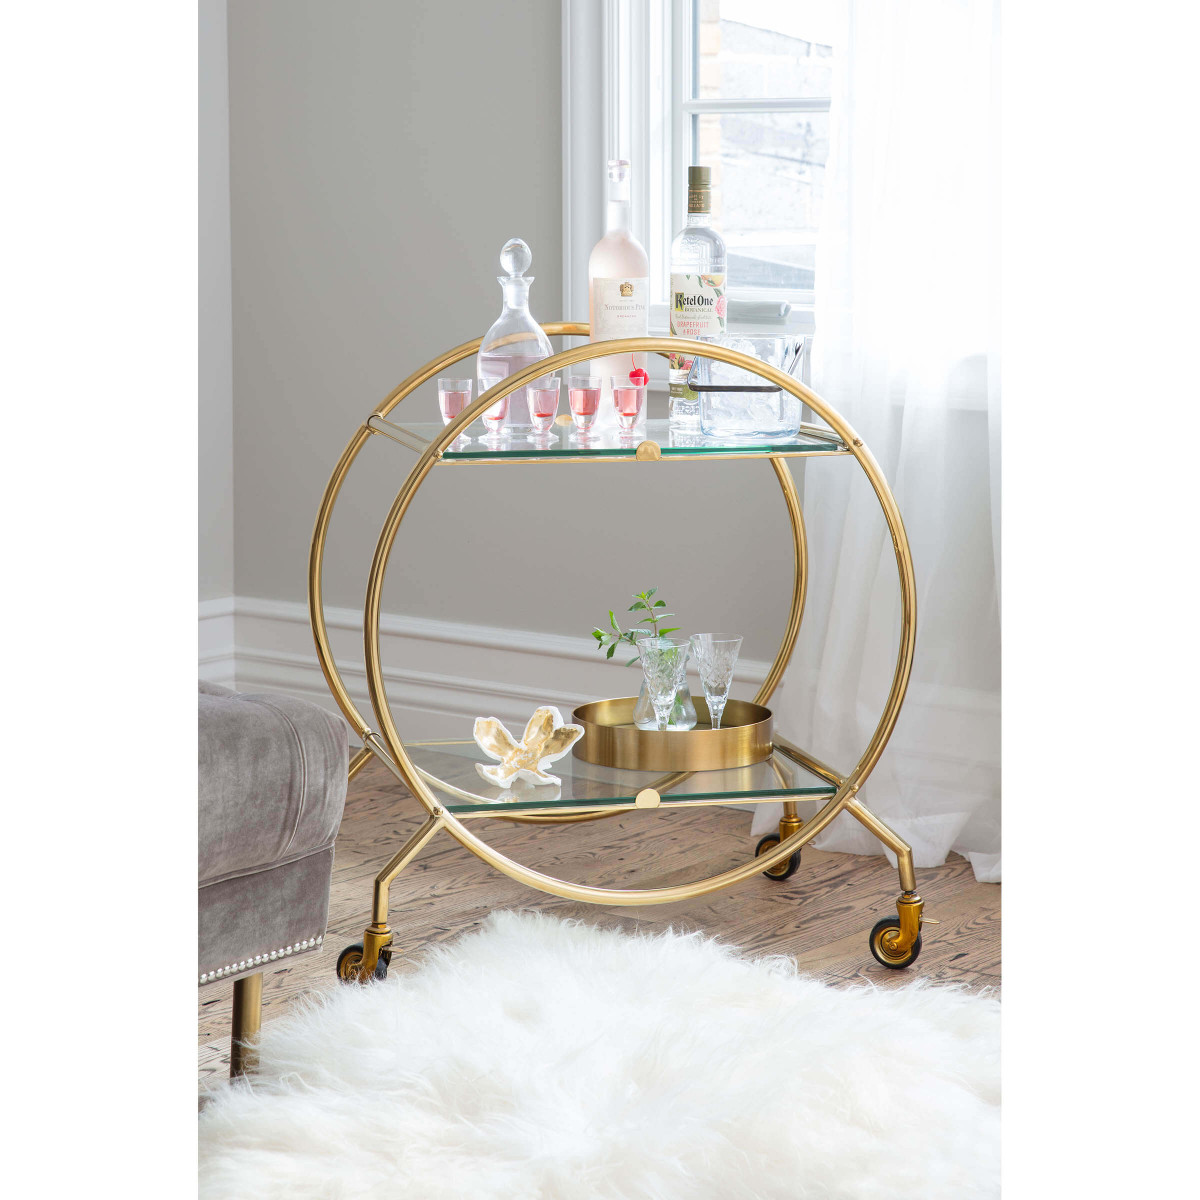 Ernesto Mirrored Trays Set | Brass